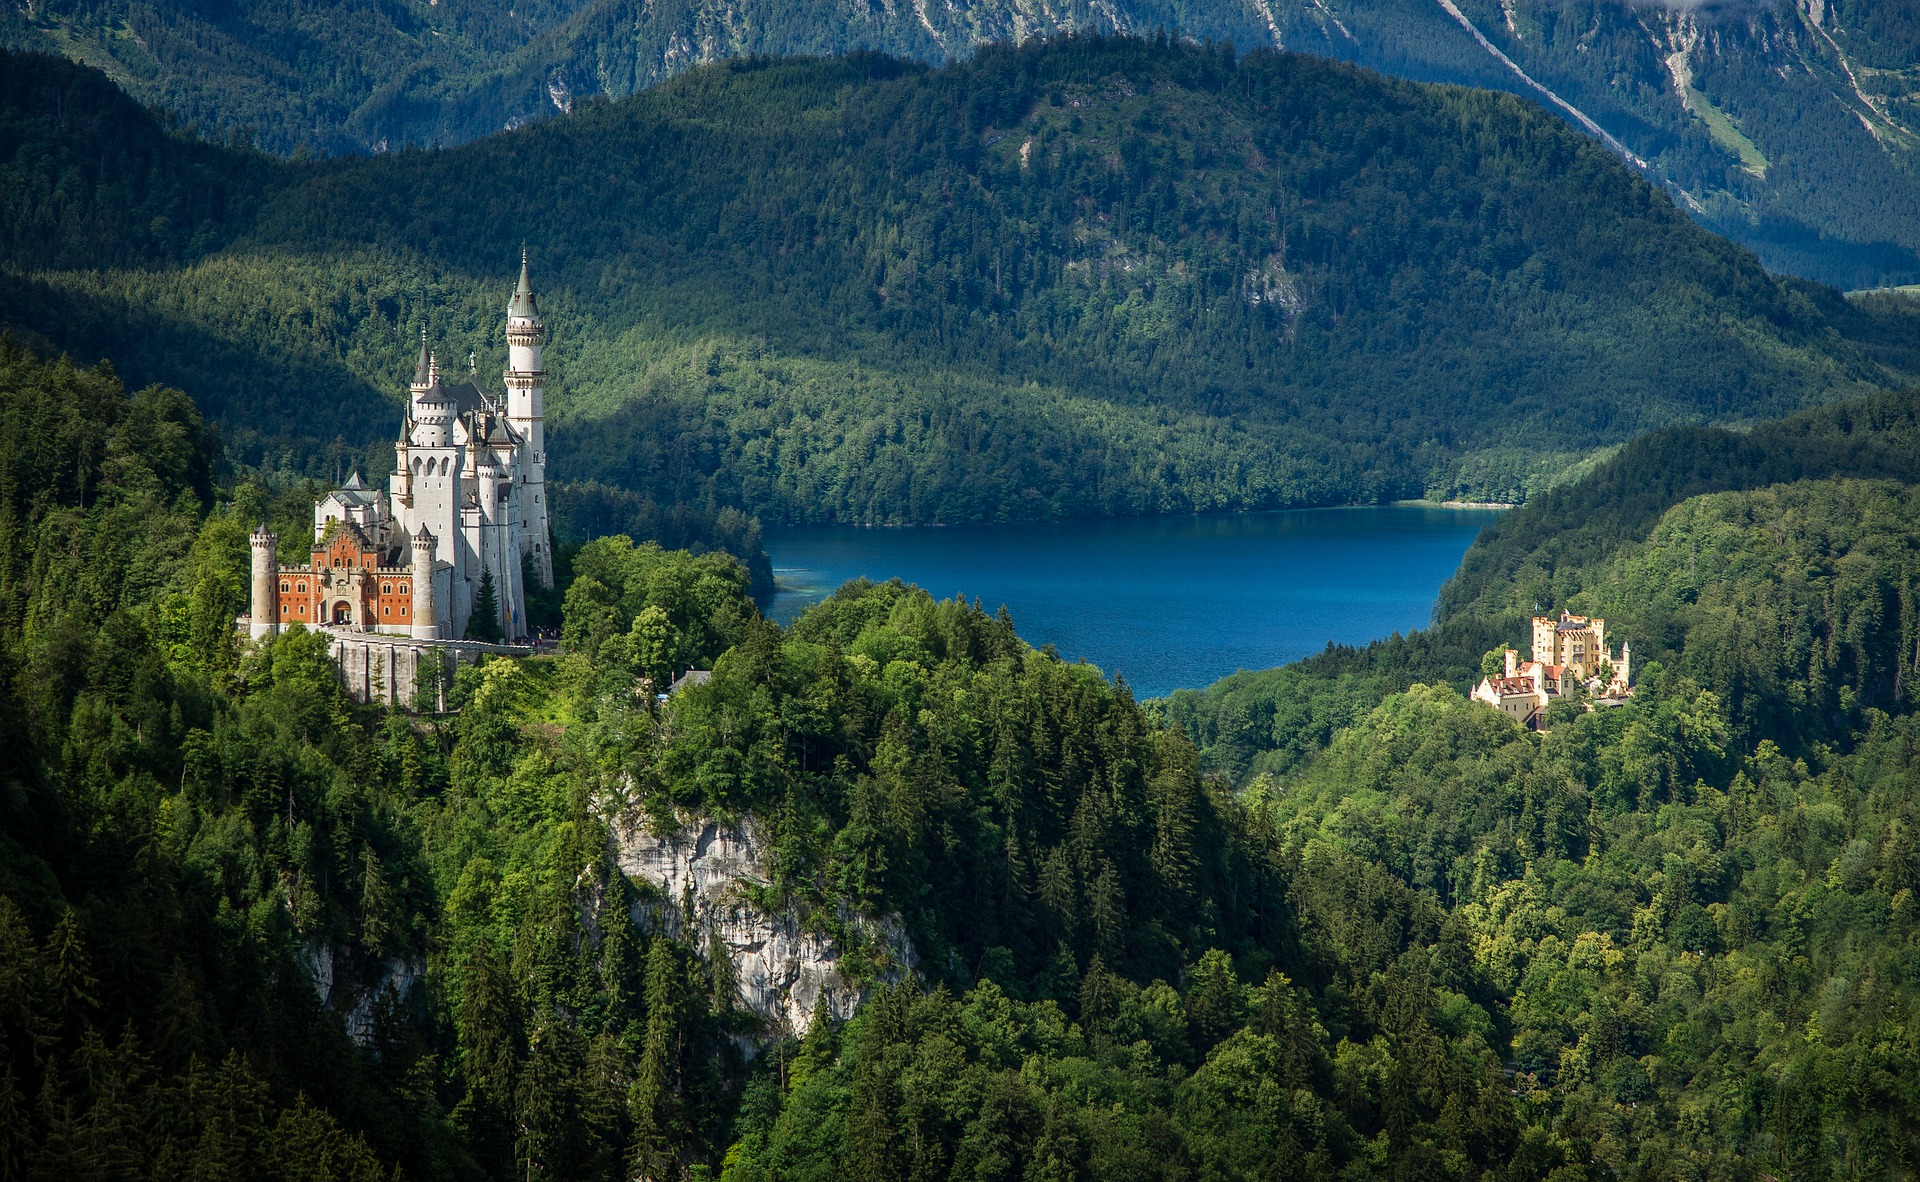 The 10 Most Beautiful Castles in the World: Castles on the hills of Germany